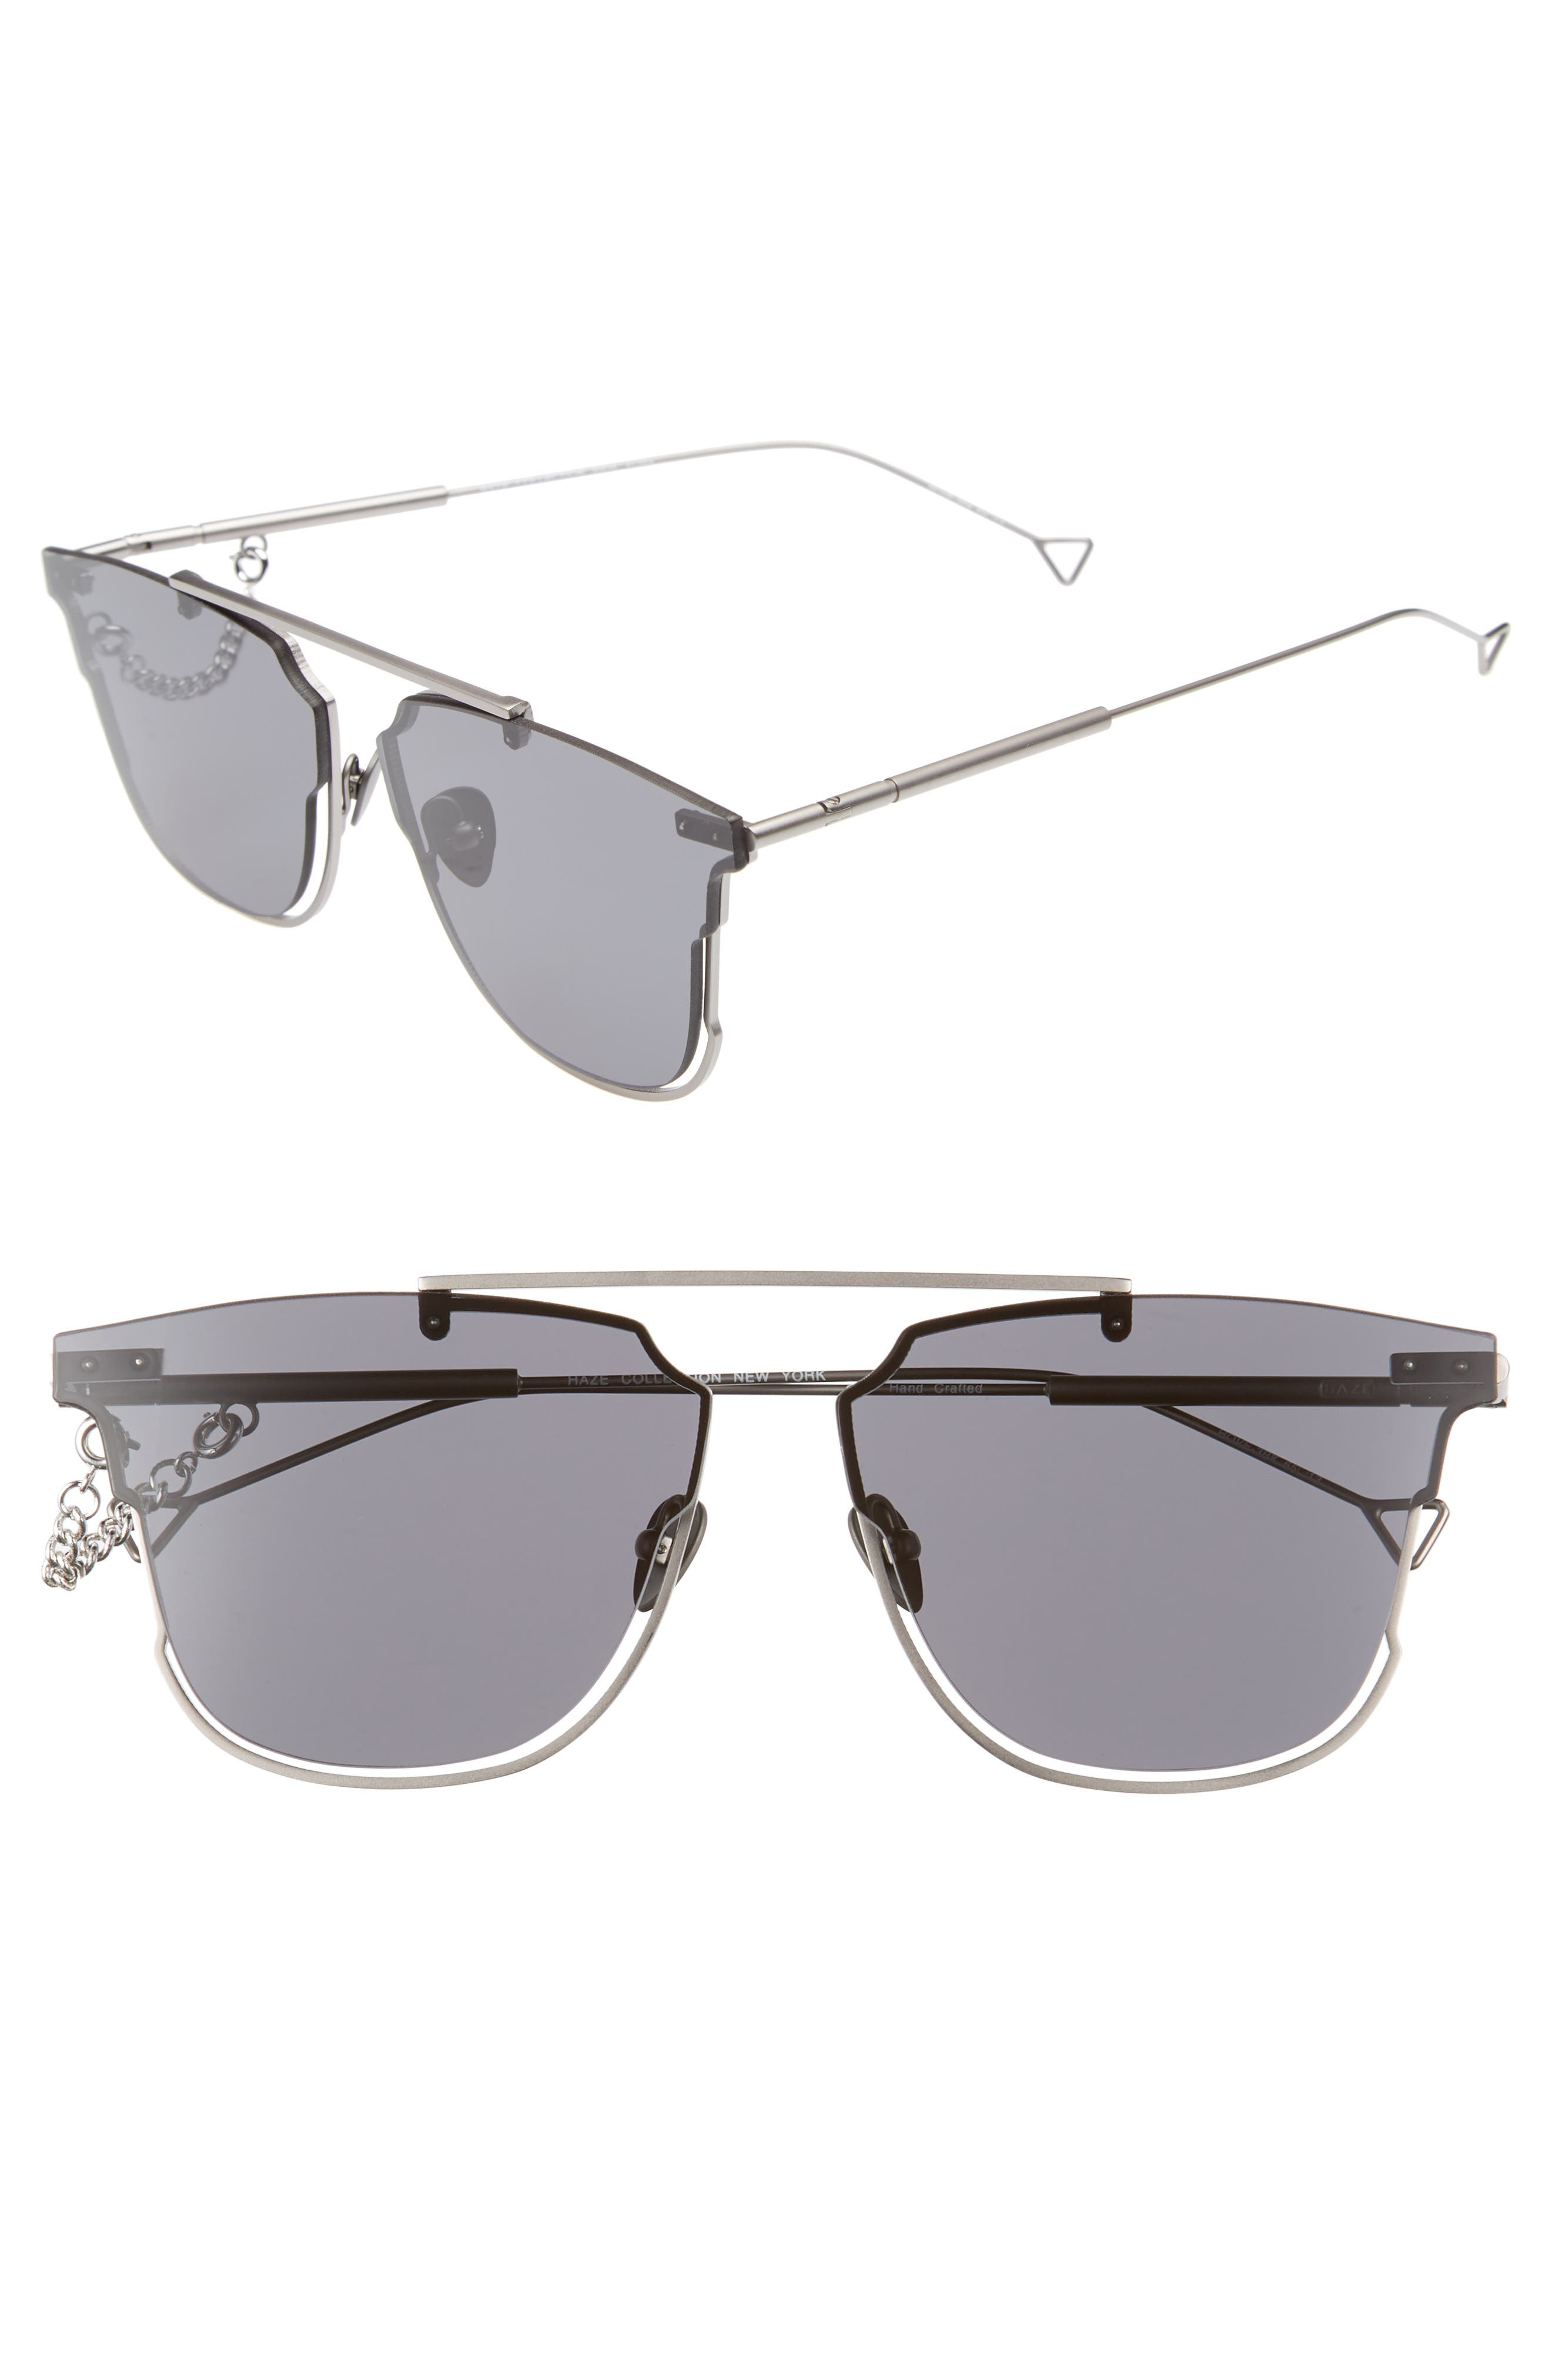 Hove 65mm Sunglasses,                             Main thumbnail 1, color,                             Smoke